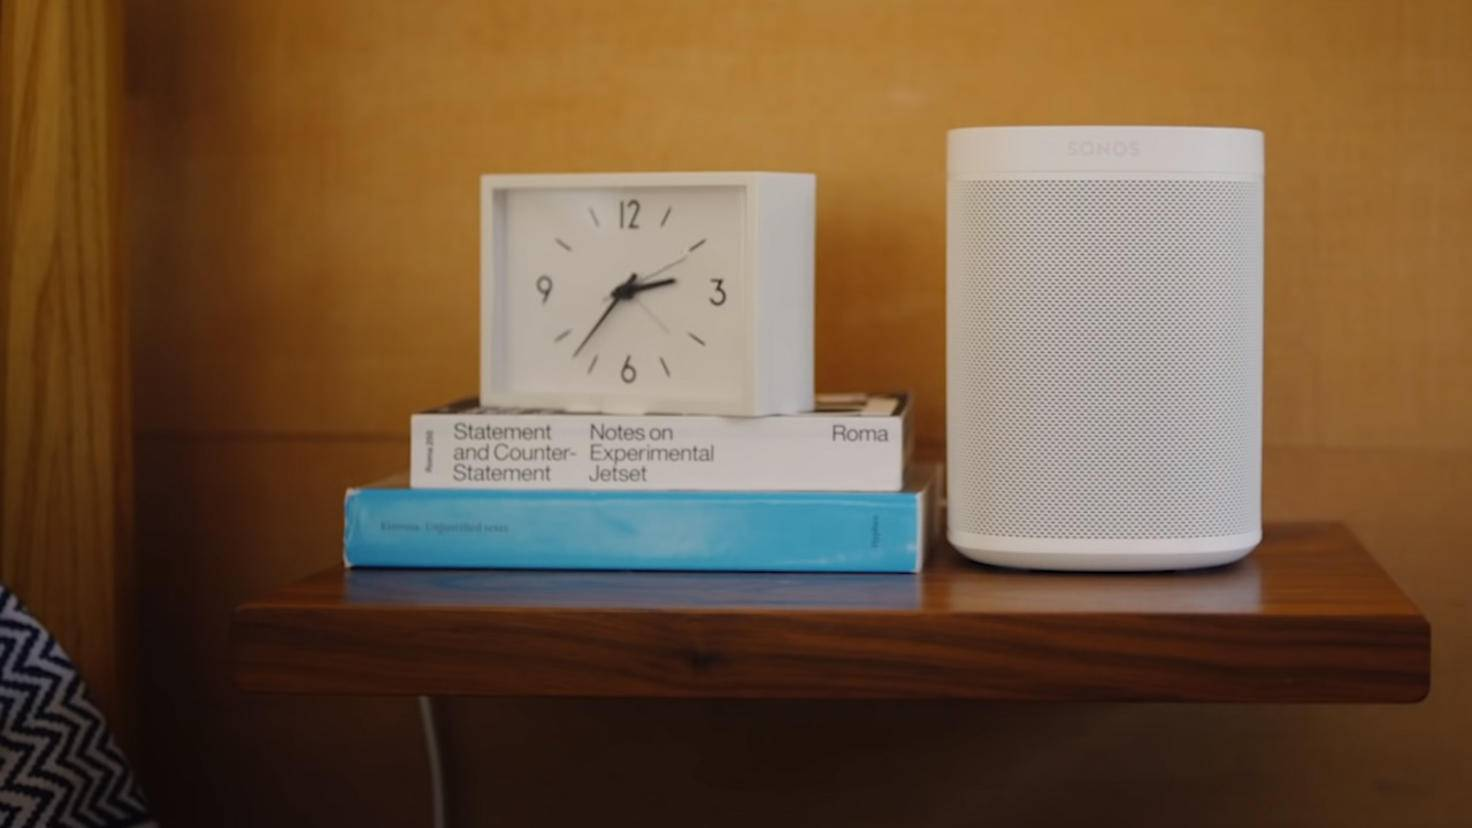 Der Sonos One löste 2018 den Play 1 ab.